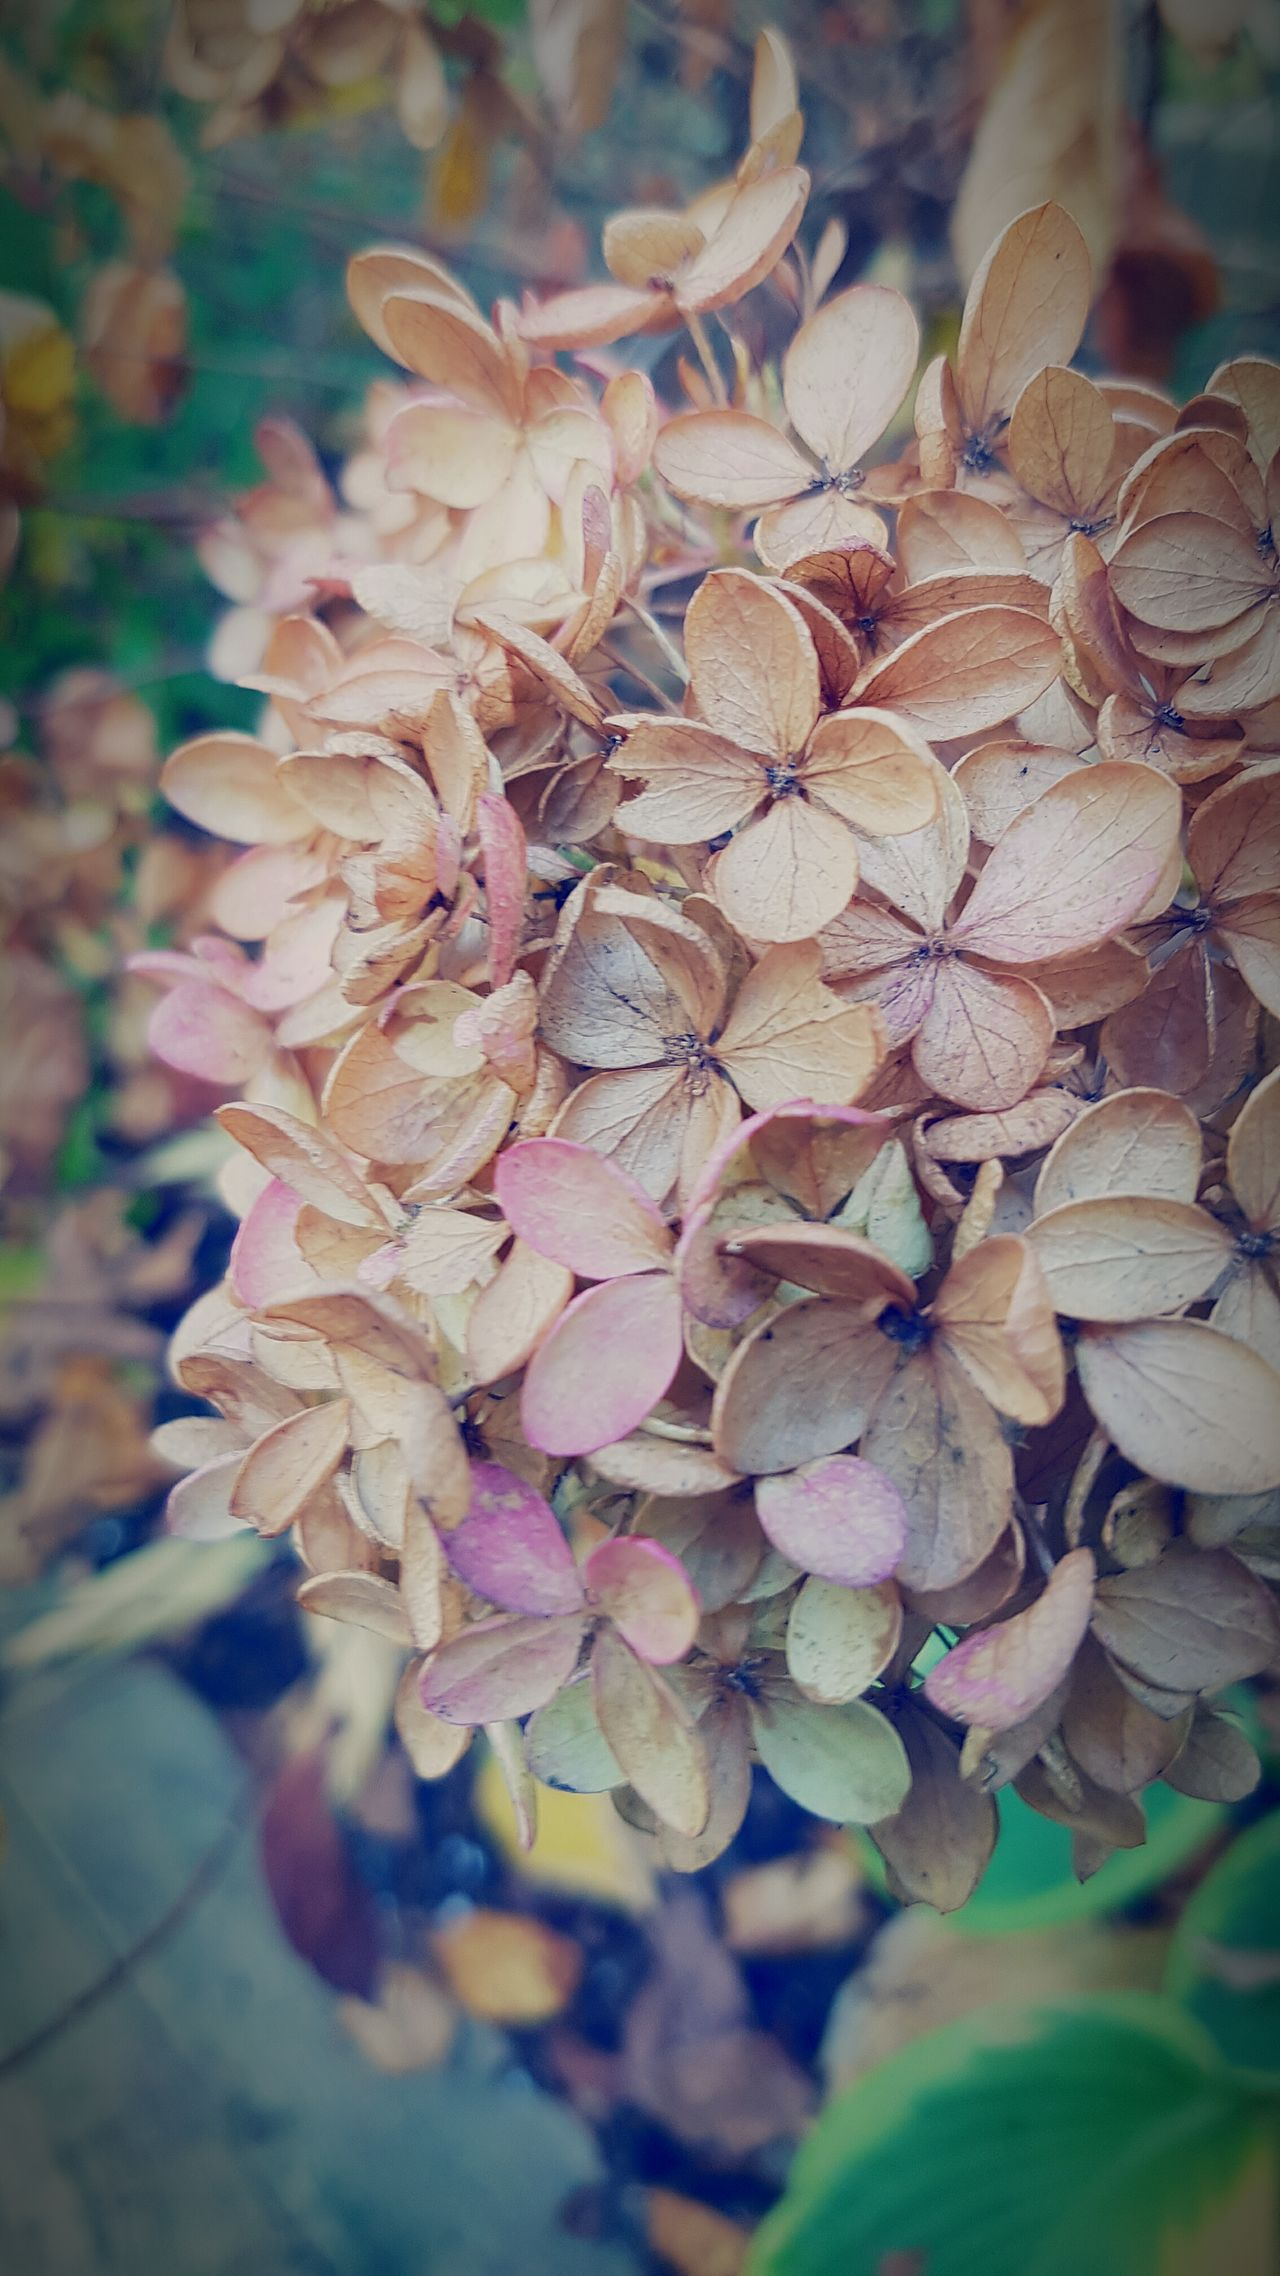 Autumn Hydrangea... Flower Head Dried Flowers Nature Hydrangea Fall Beauty Flowers,Plants & Garden EyeEm Gallery EyeEm Market © Eyeem Market Team Mobile Photography Eyeemphotography Eyeem Collection Macro Photography Eyeem Canada Eyeem Marketplace Eye4photography  EyeEm Best Shots EyeEm Best Shots - Nature Lmage Of The Week Plant Nature Outdoors Close-up EyeEmBestPics Check This Out!